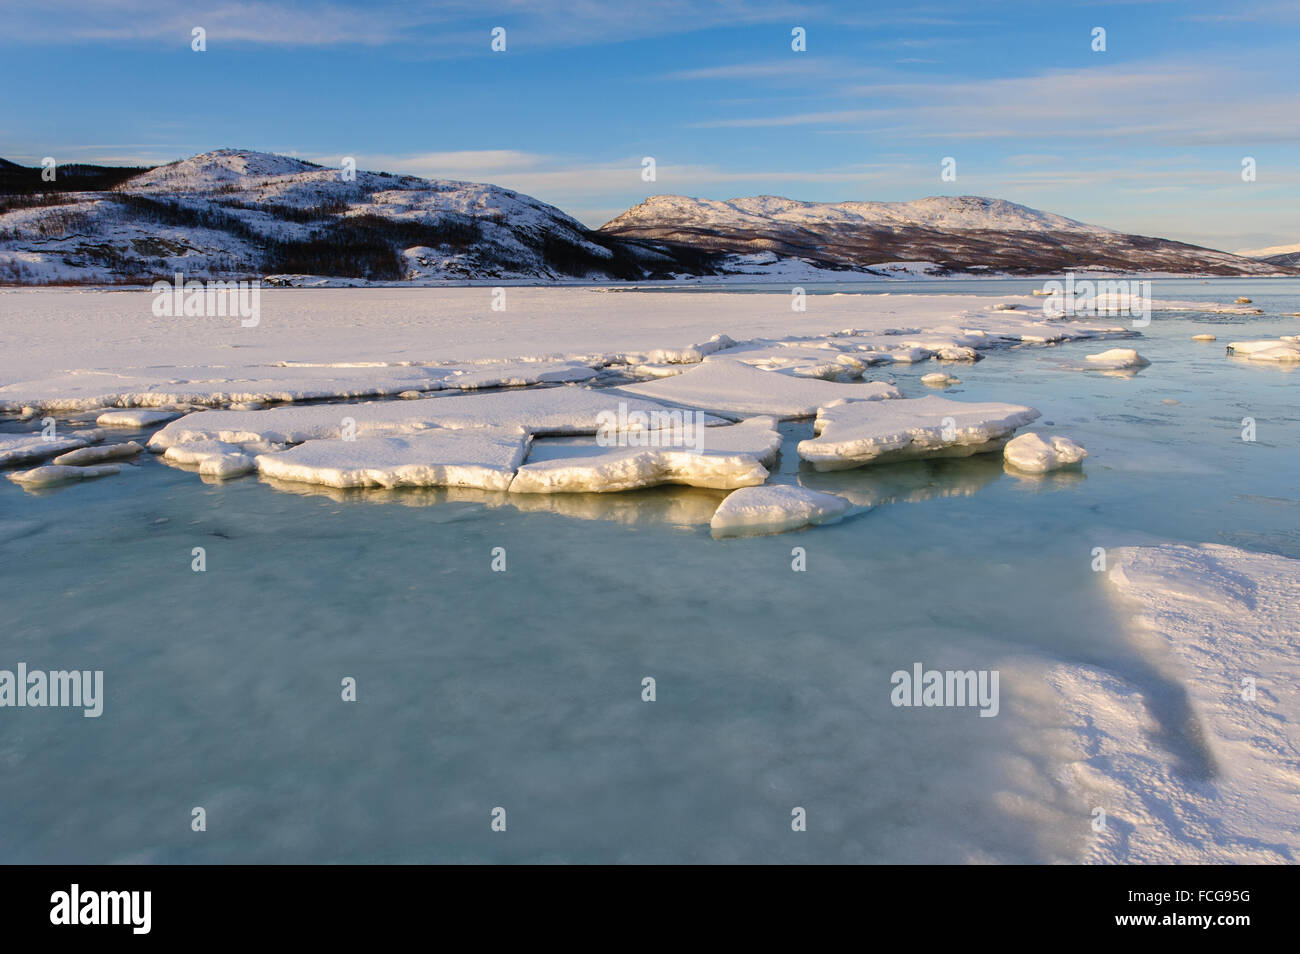 Snow and ice on the shore of a fjord in northern Norway between Tromsø and Alta, 69º north - Stock Image